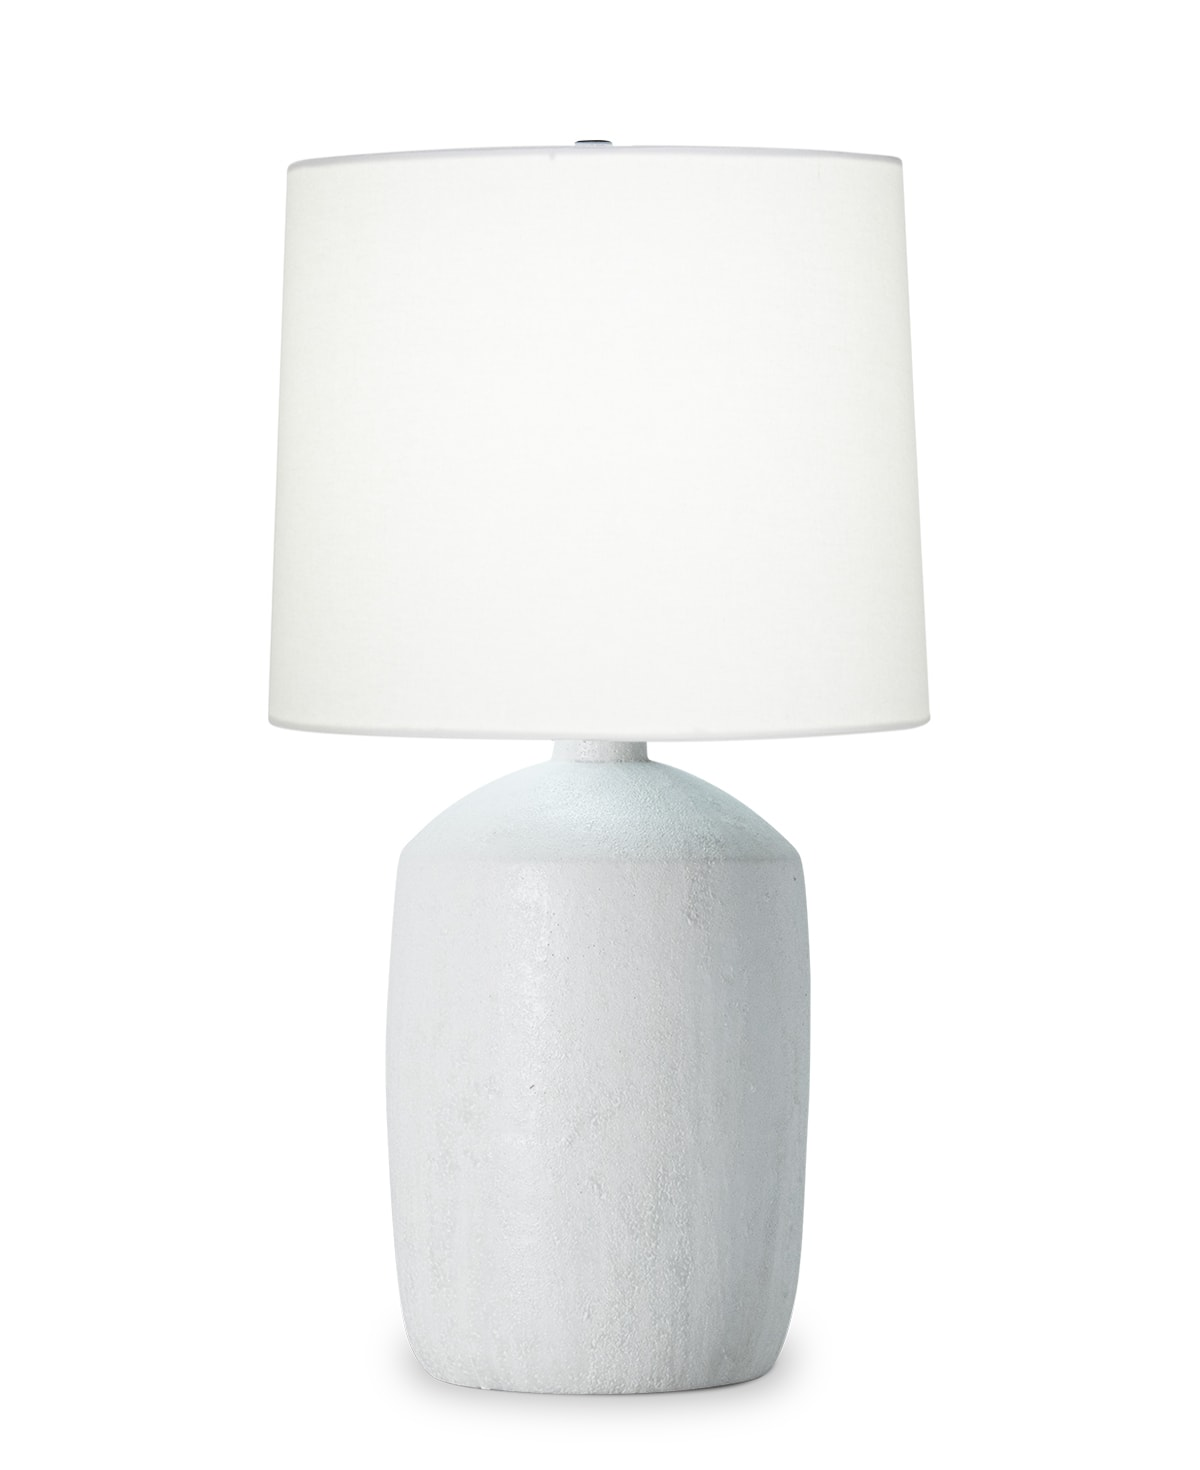 FlowDecor Sarah Table Lamp in ceramic with white finish and off-white linen tapered drum shade (# 4504)